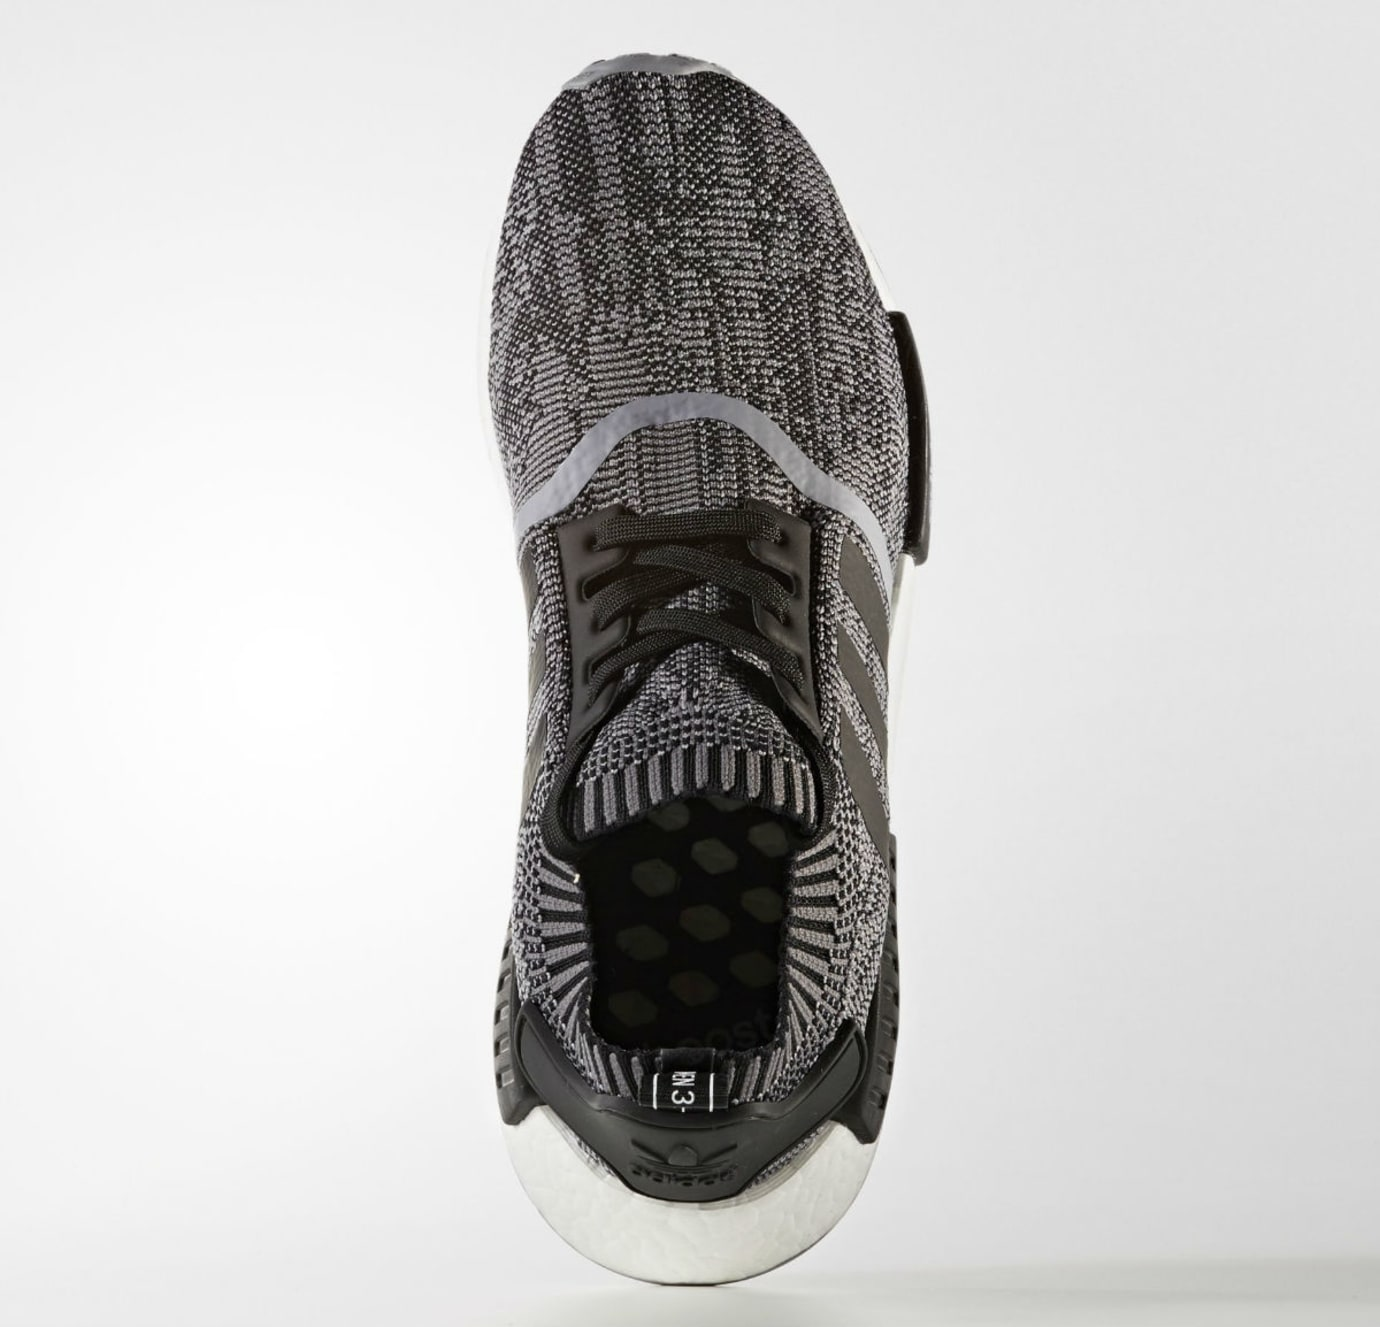 Adidas NMD R1 Primeknit Core Black White Top CQ1863